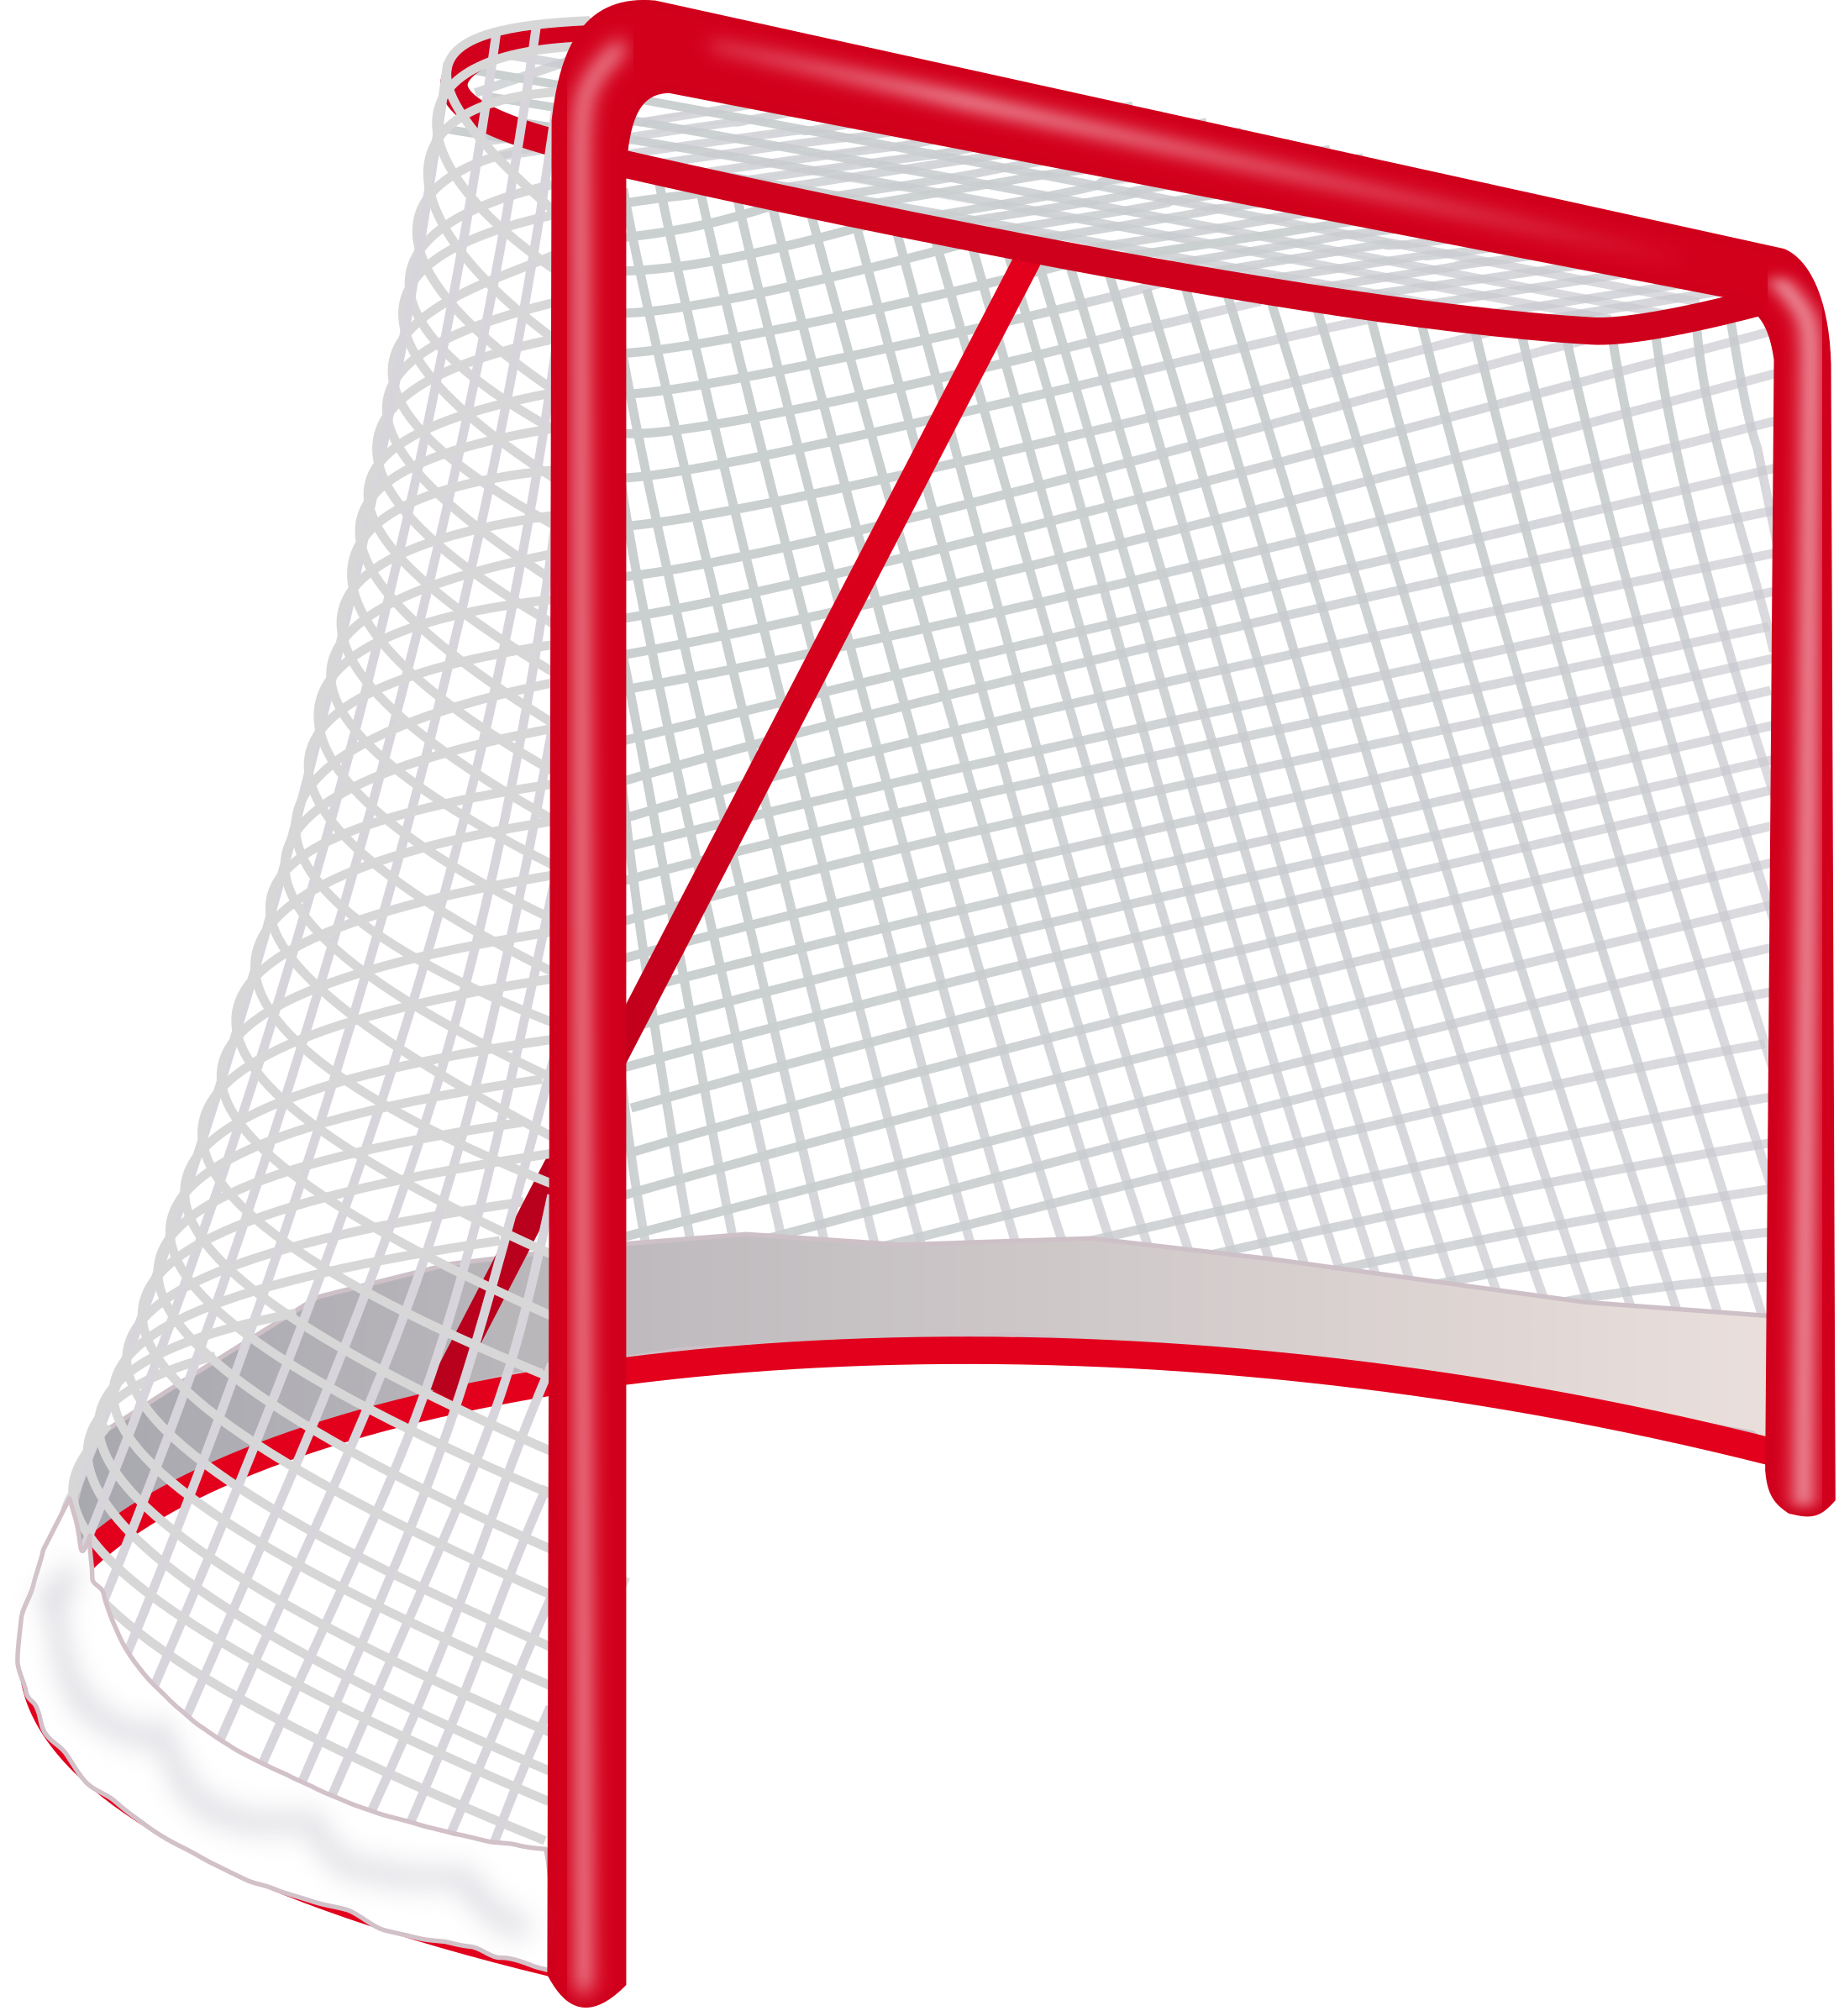 Goal vector keeper. Collection of hockey